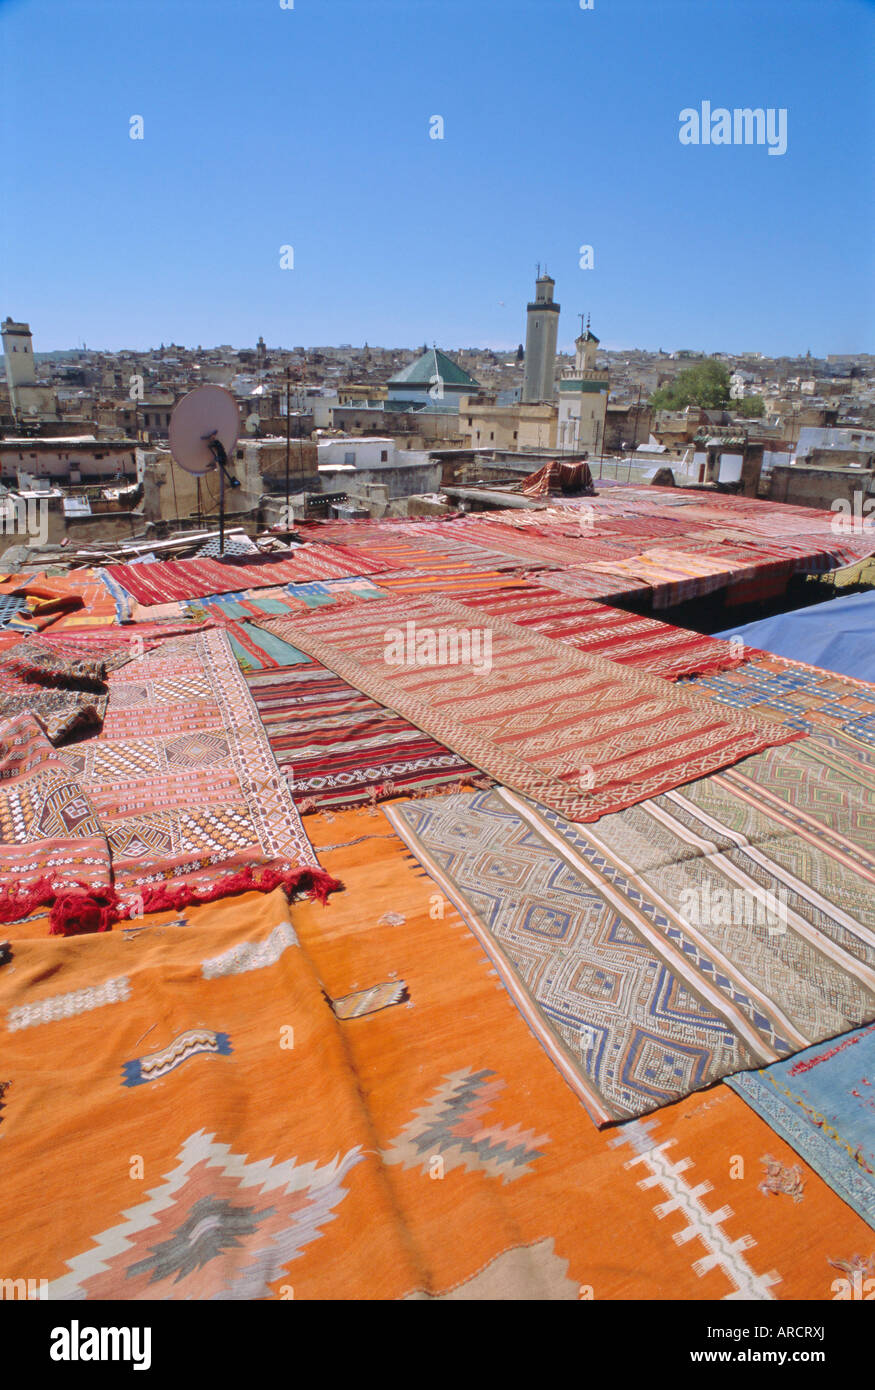 Carpet co-op in the Medina, Fez, Morocco, North Africa - Stock Image